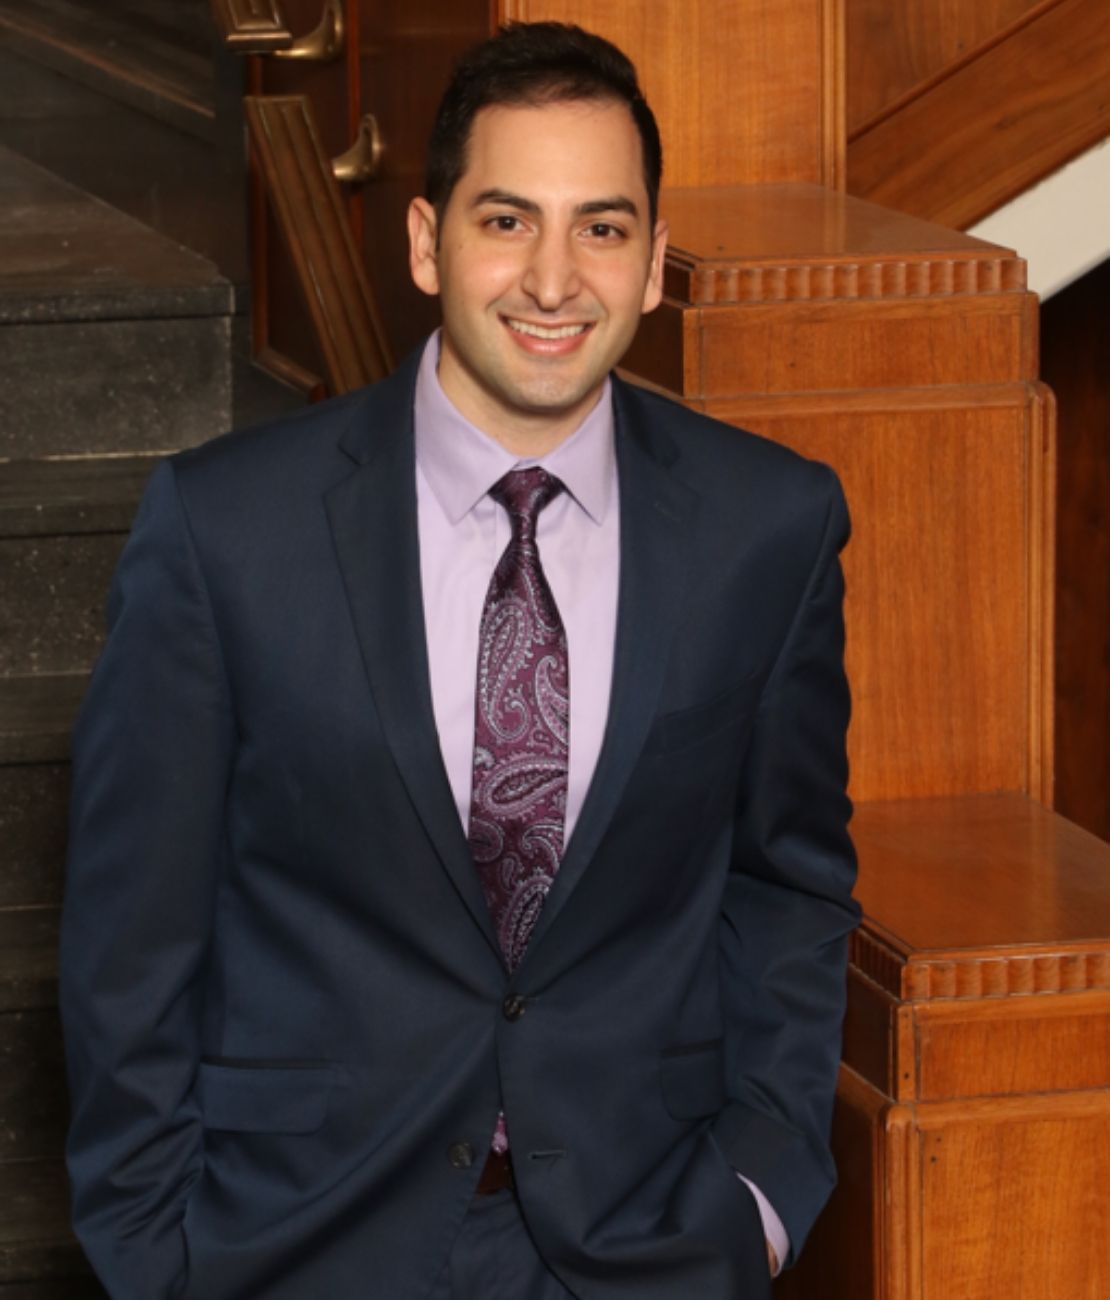 Dr. Brandon Shoukri